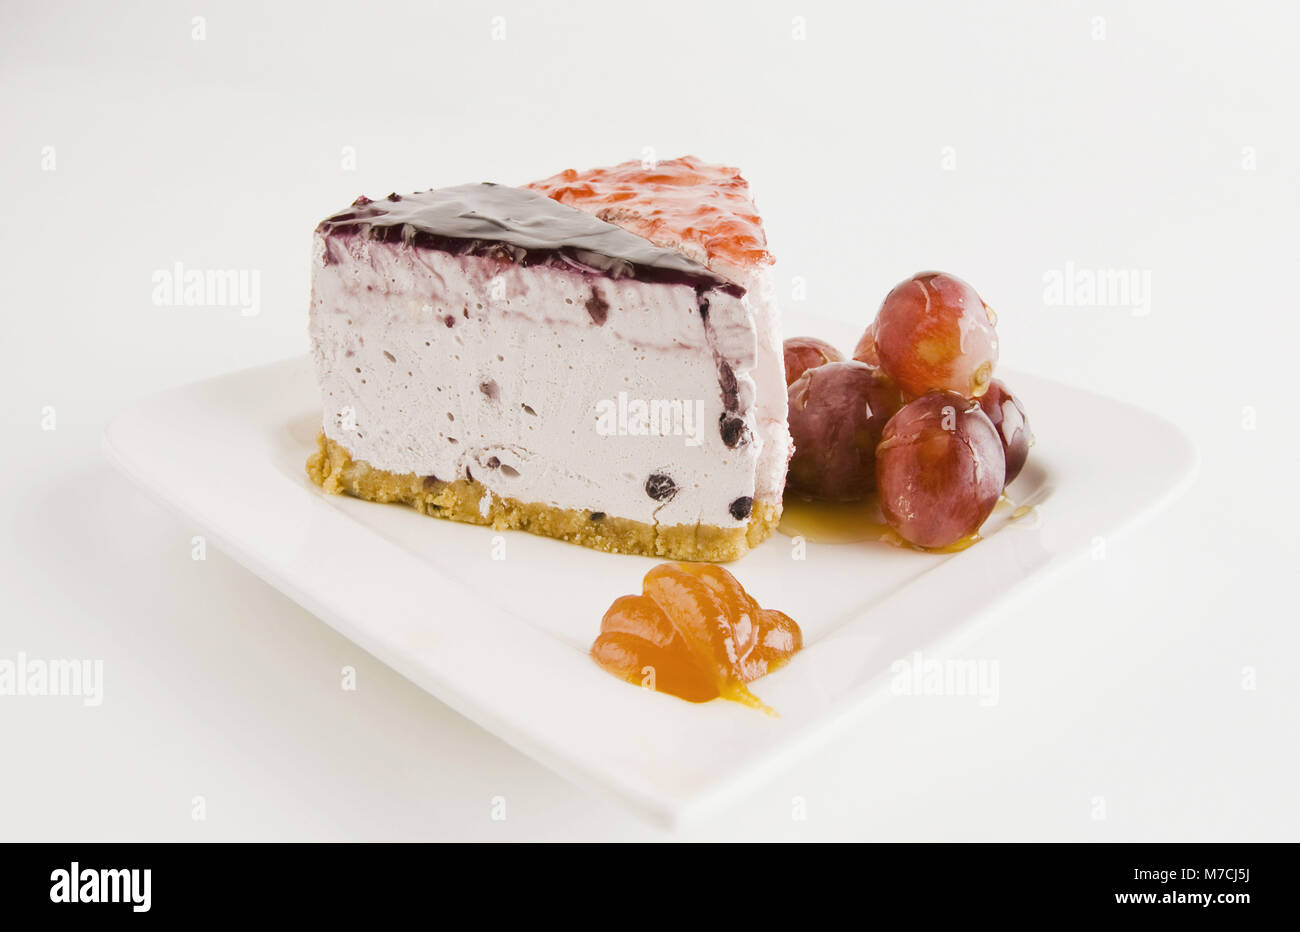 Close-up of two slices of cheesecake with glazed grapes - Stock Image